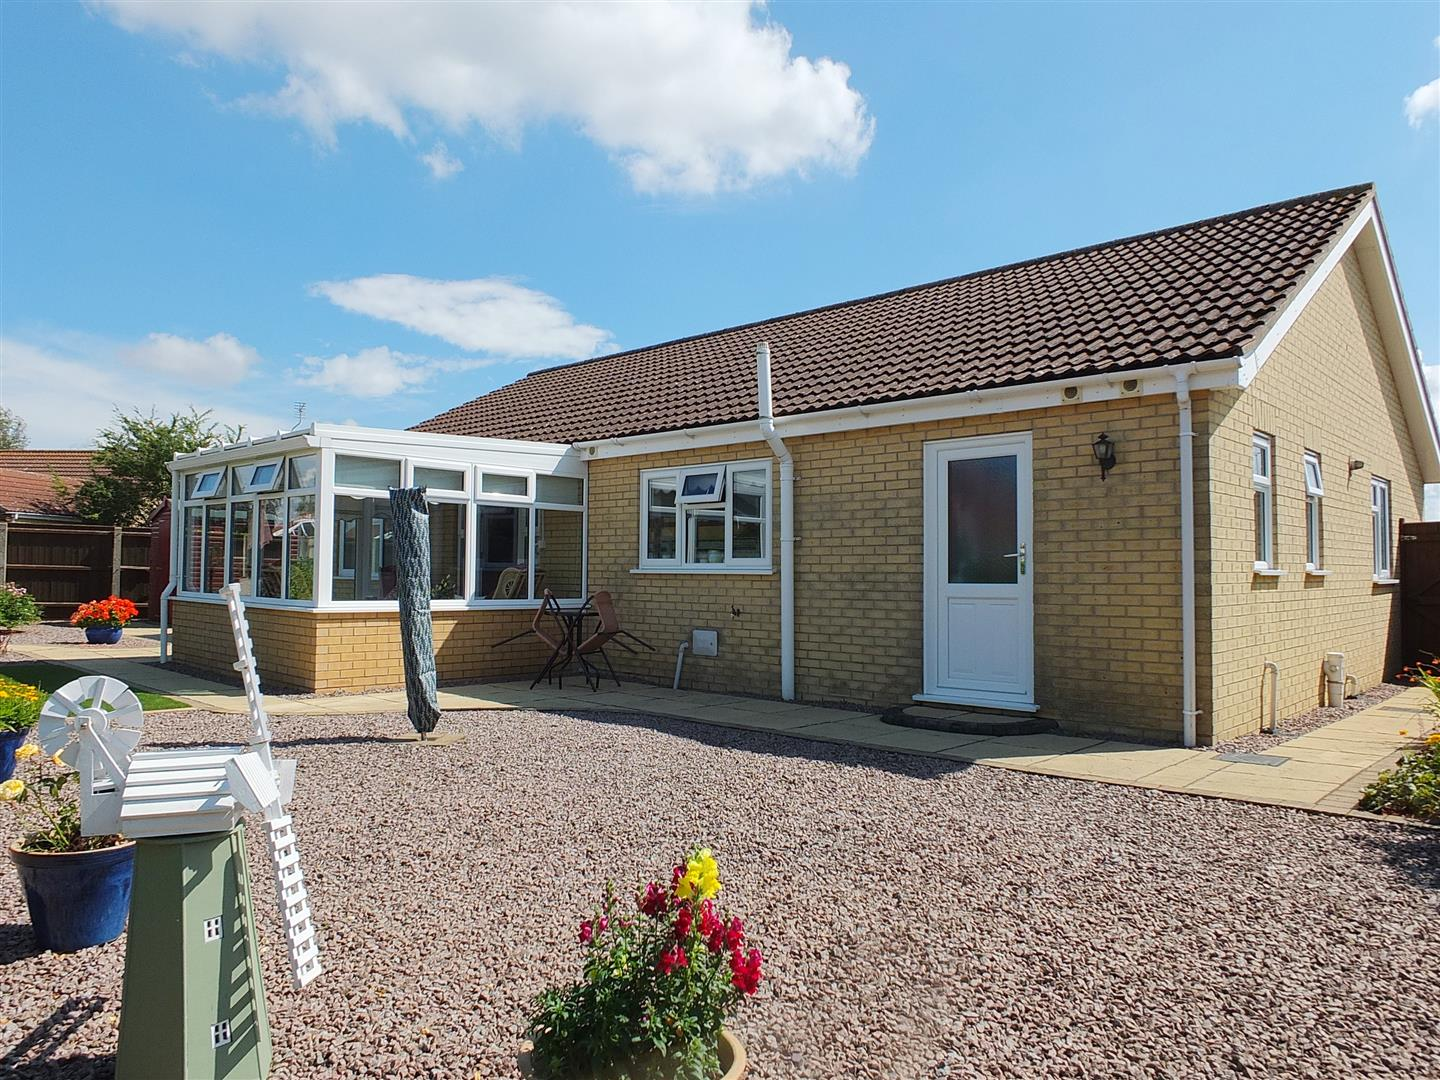 3 bed detached bungalow for sale in Long Sutton Spalding, PE12 9FT 18